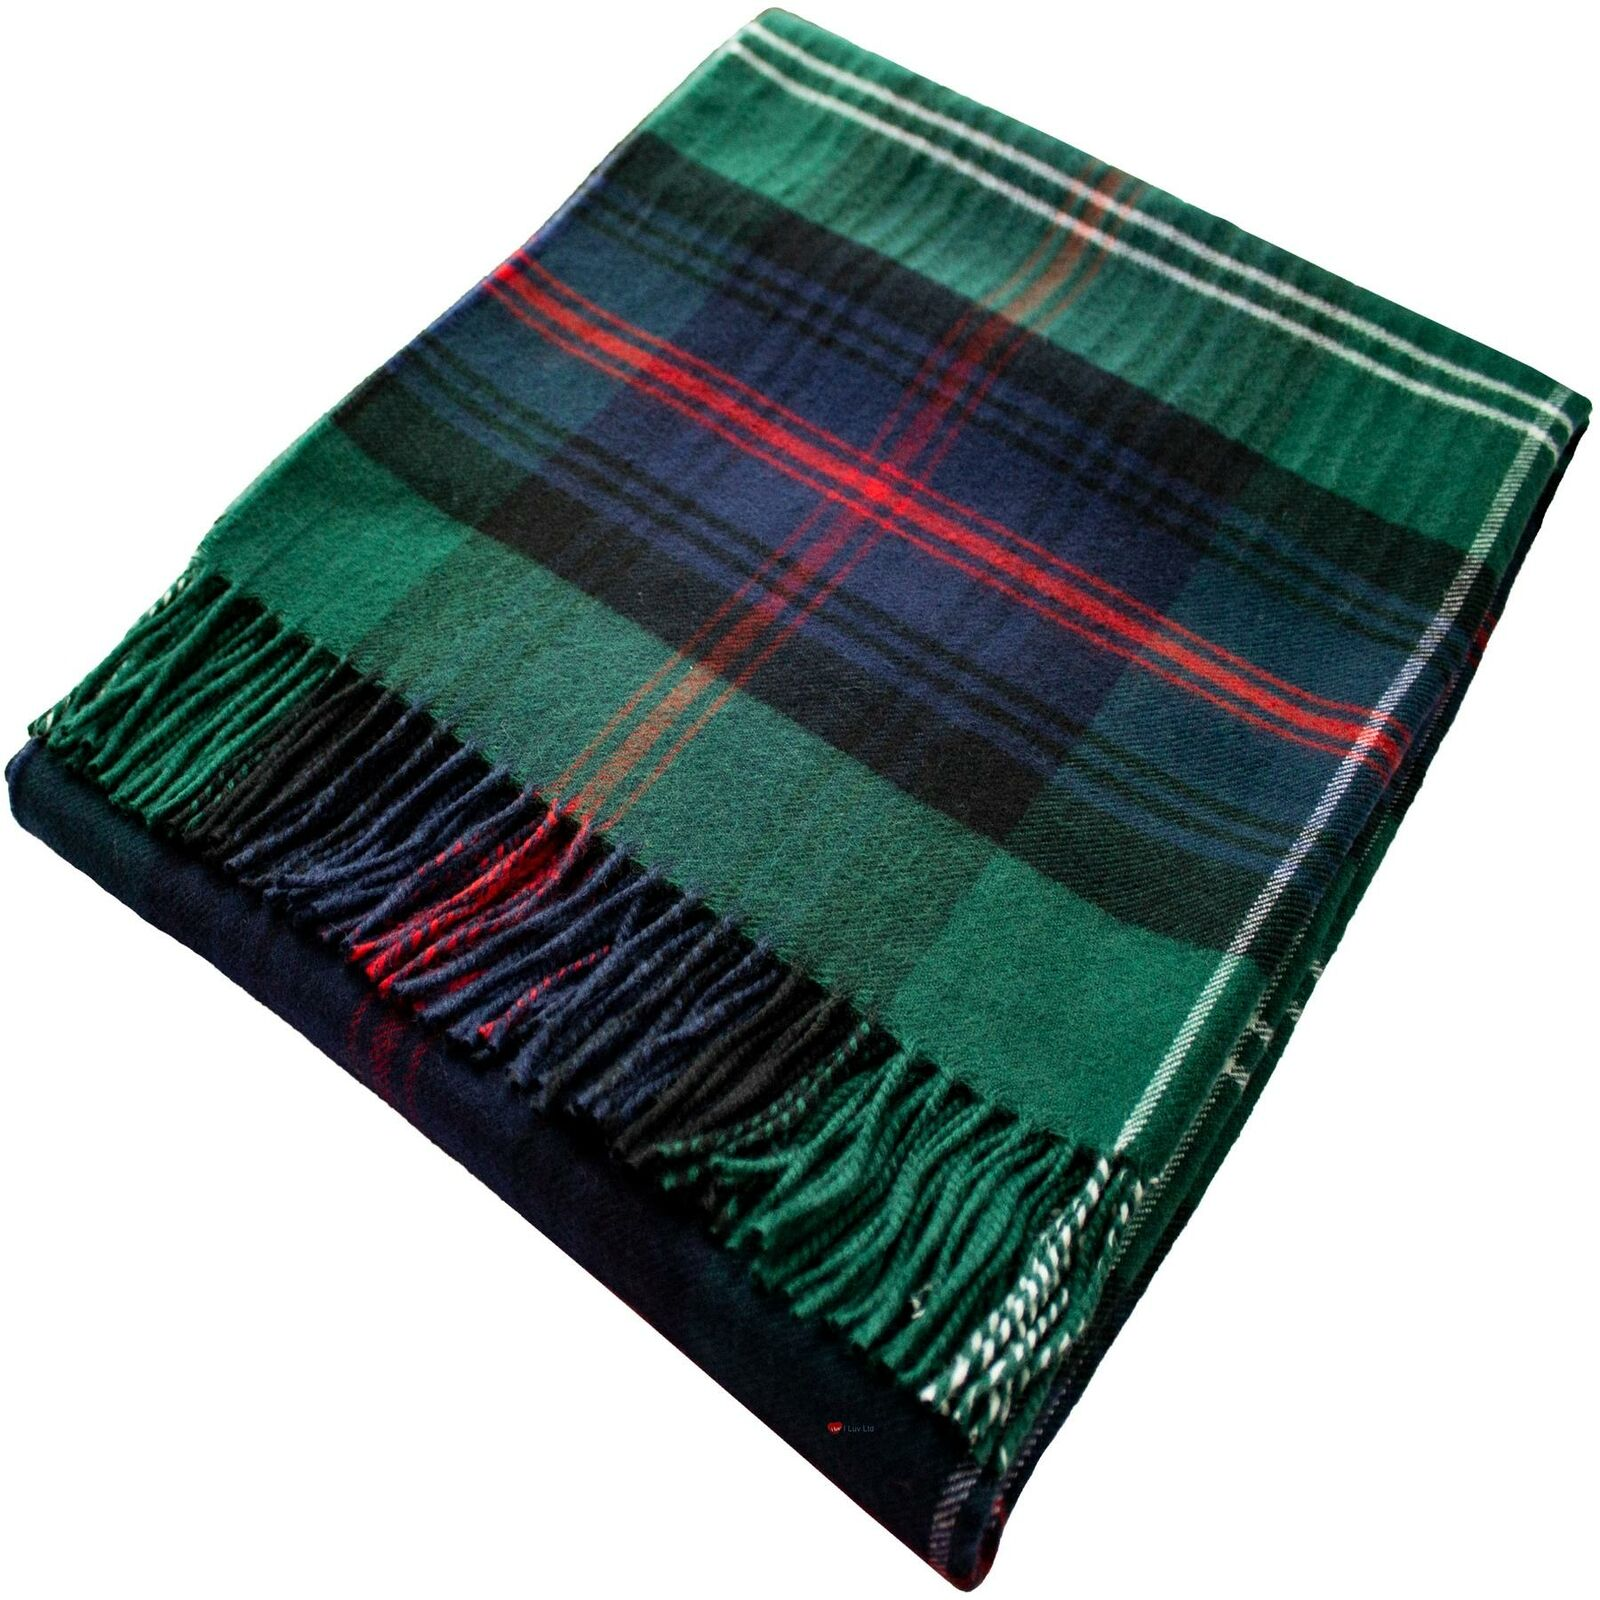 Lambswool Blanket Sutherland Old Modern Tartan Plaid 100% Soft Wool